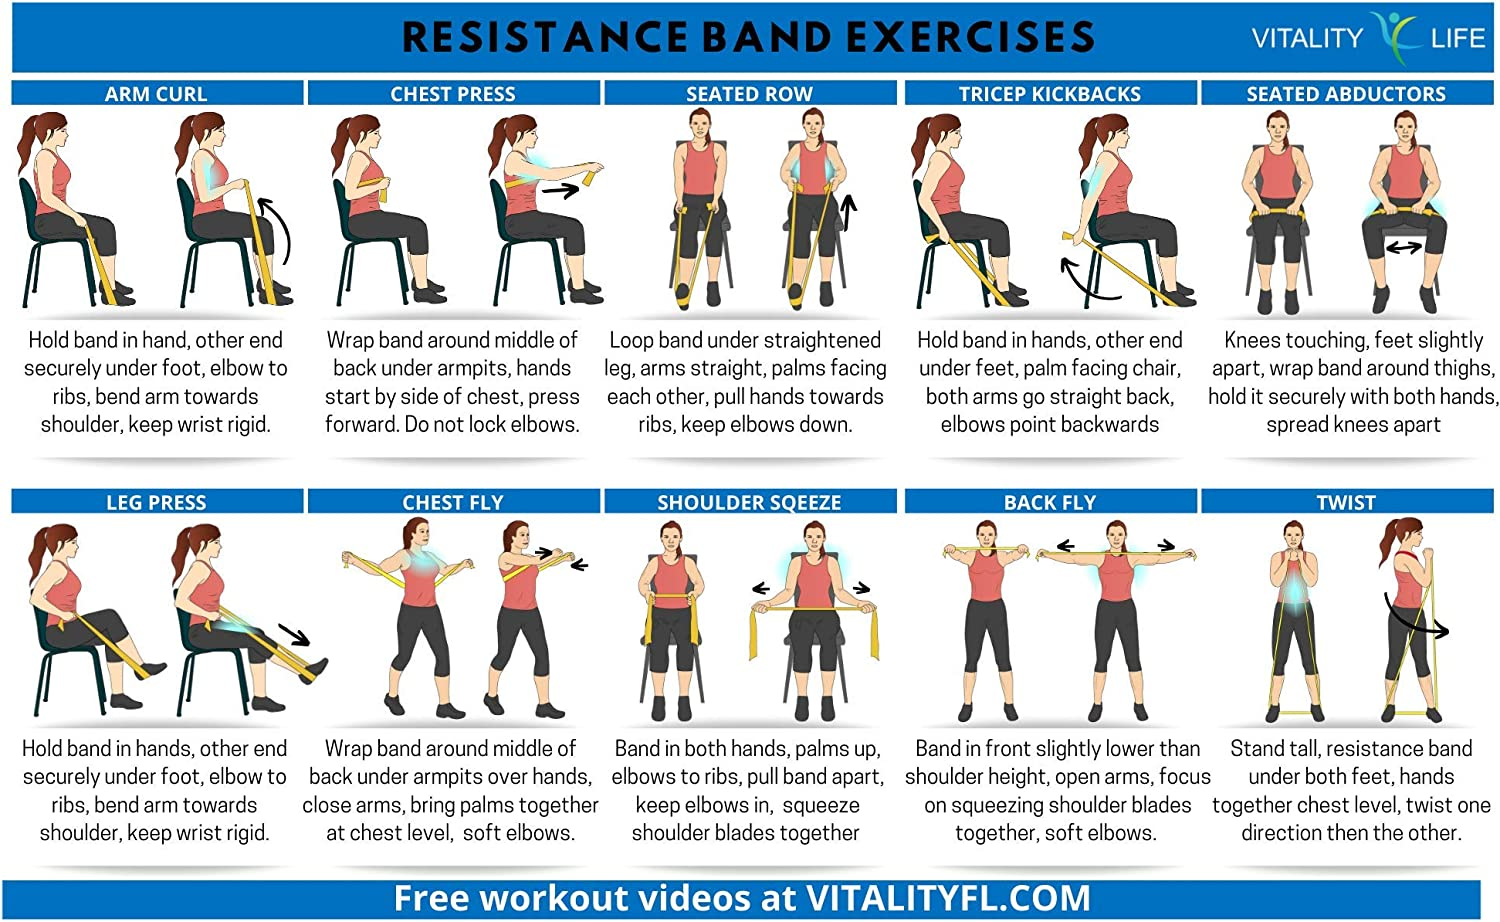 Amazon Com Resistance Band For Seniors Exercise Band Specifically Created For Seniors With Extra Light Resistance And Longer Length Instruction Guide Latex Free Exercise Stretching Physical Therapy Sports Outdoors